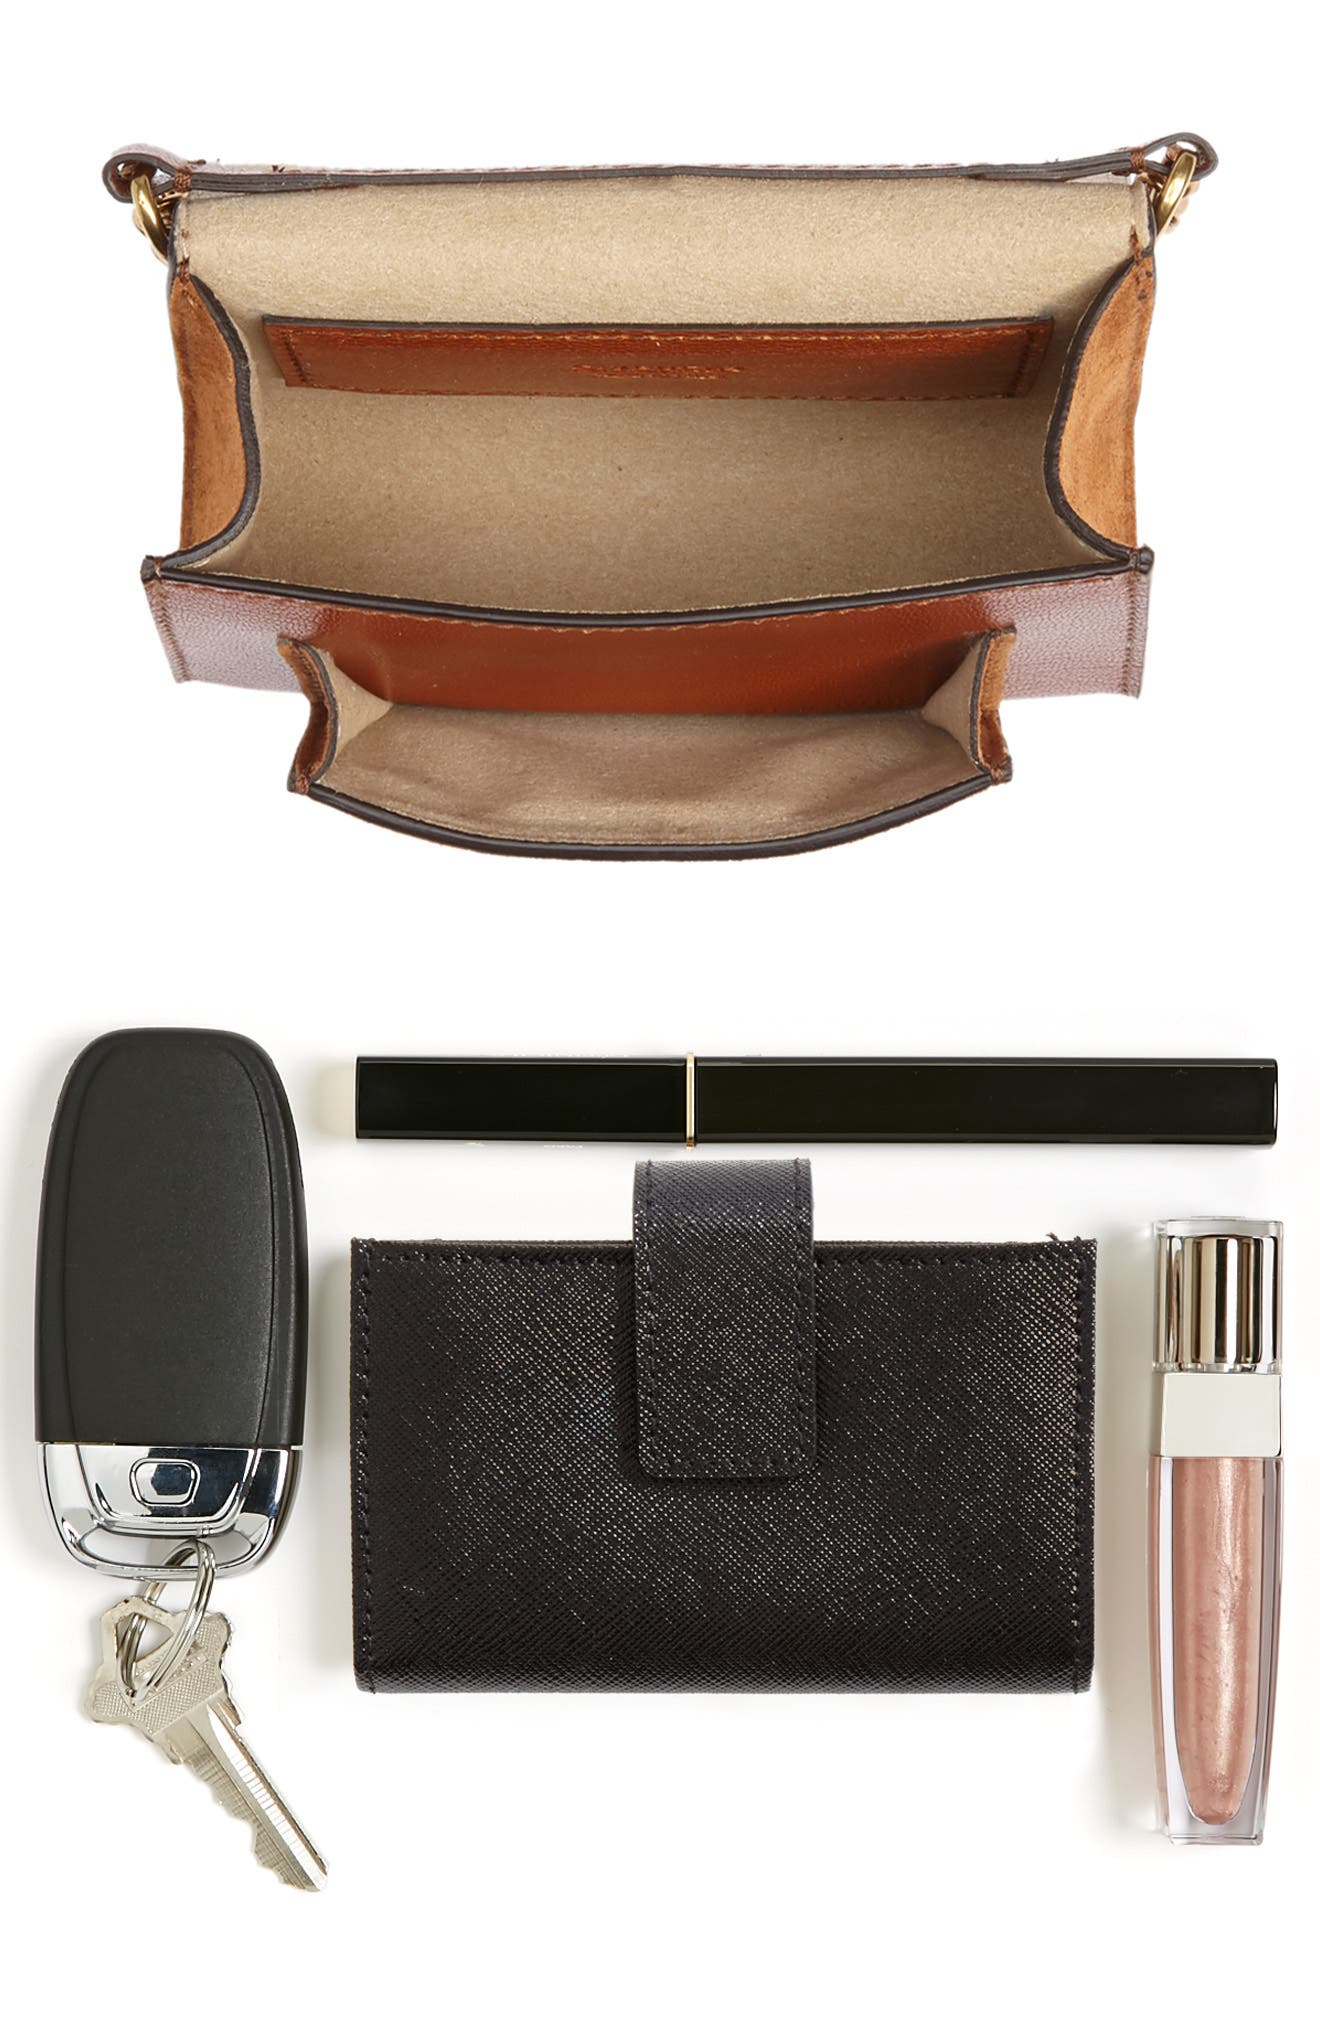 Givency Nano GV3 Leather & Suede Crossbody Bag,                             Alternate thumbnail 9, color,                             CHESTNUT